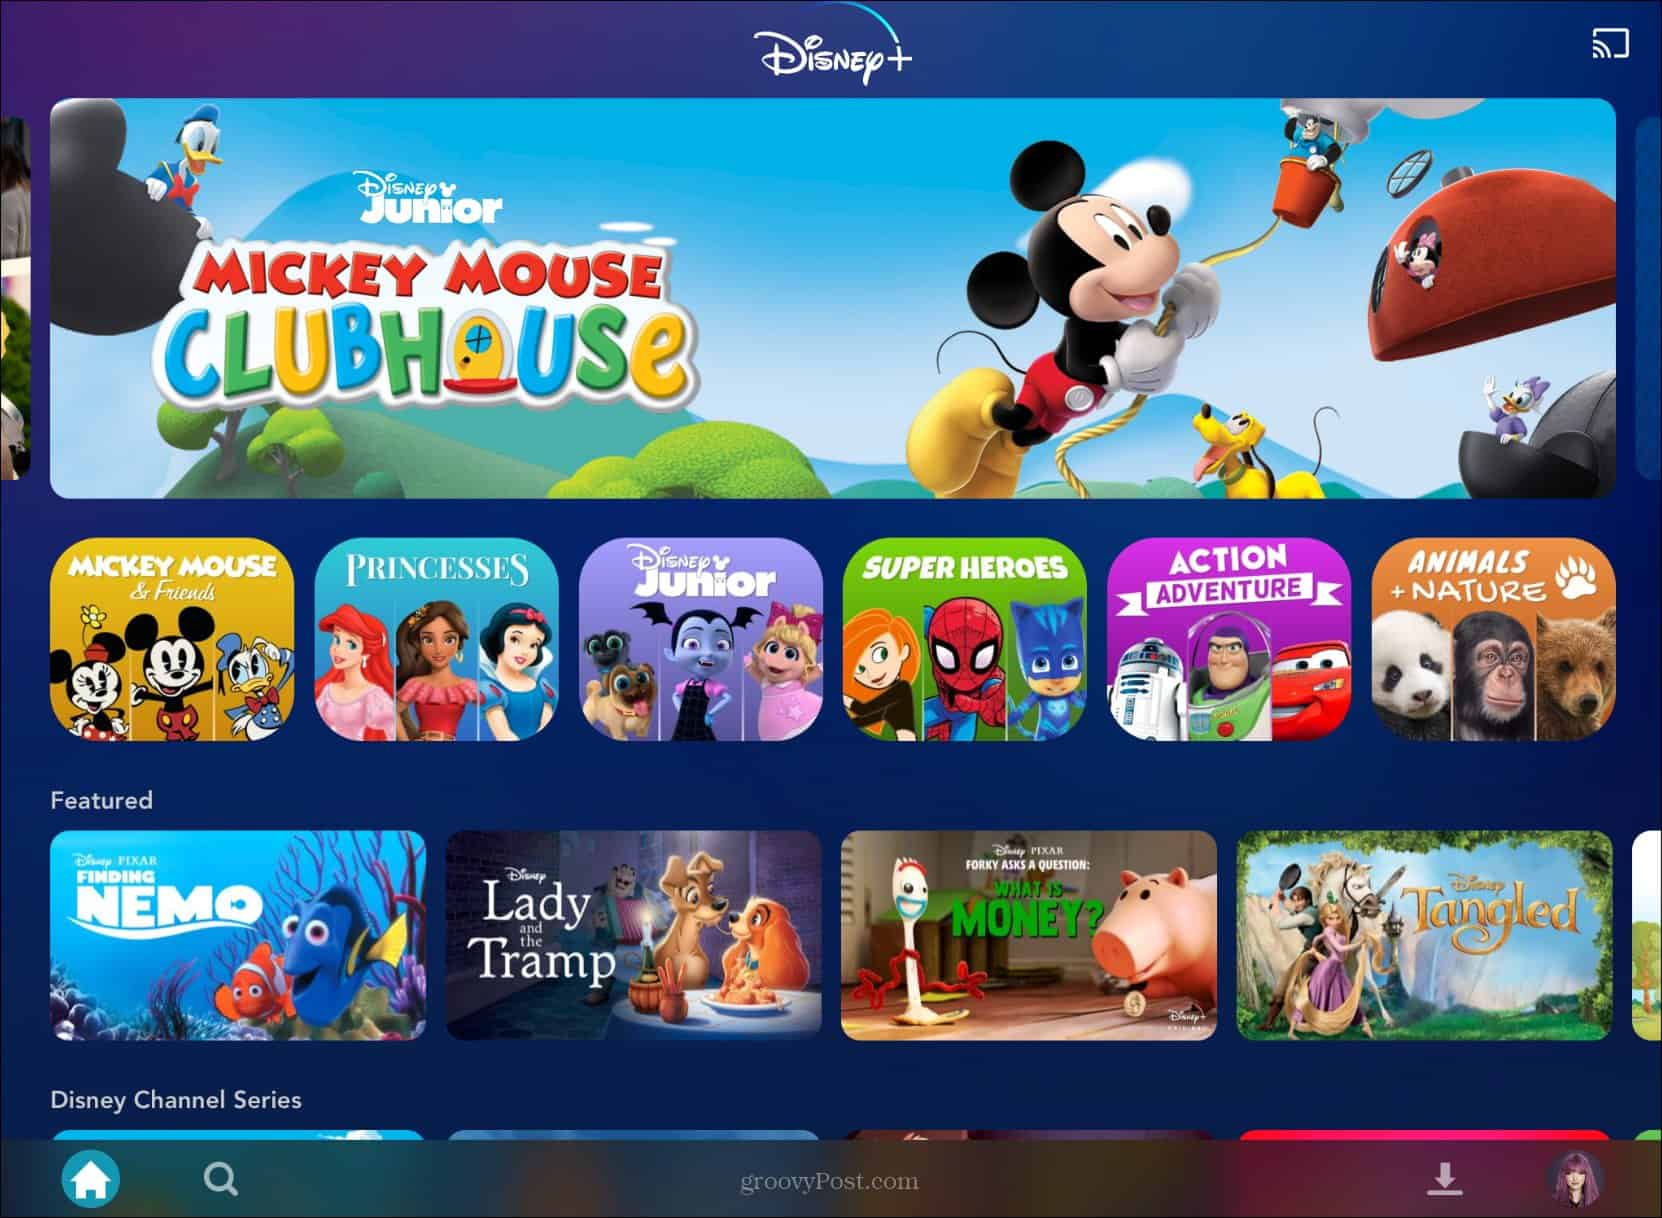 Disney Plus kids shows Mickey Mouse Clubhouse